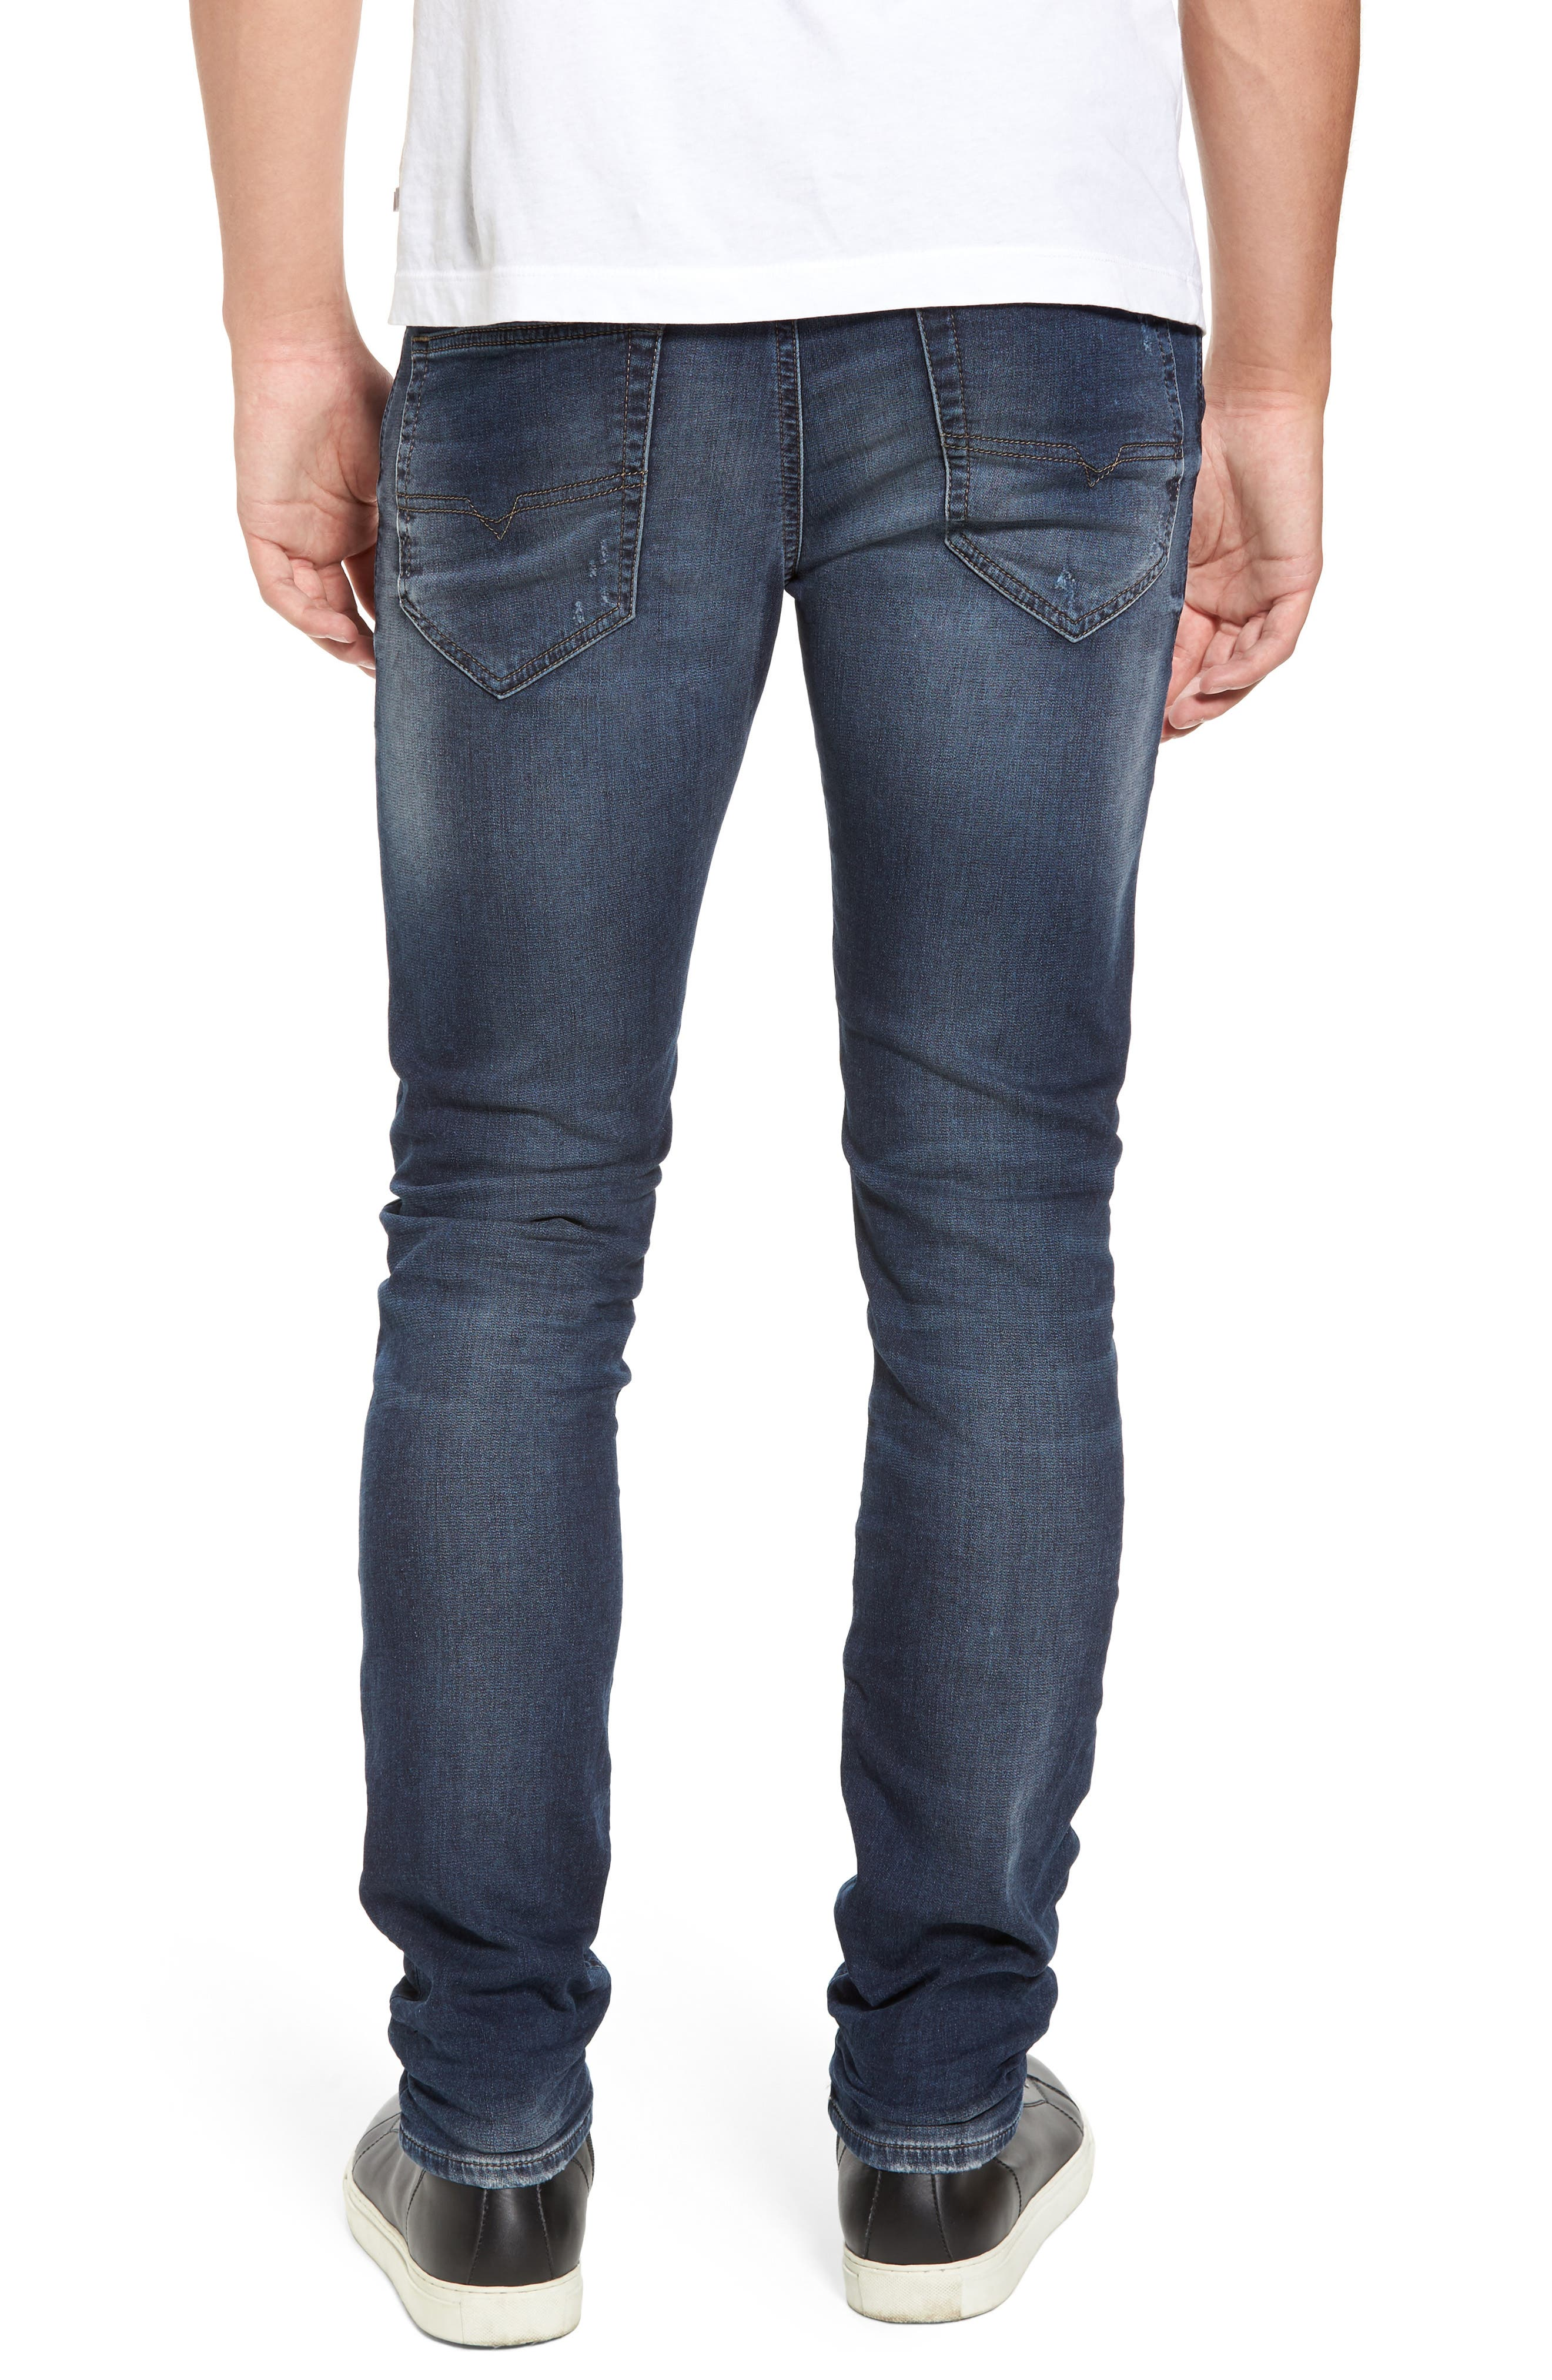 Thommer Slim Fit Jeans,                             Alternate thumbnail 2, color,                             0686W